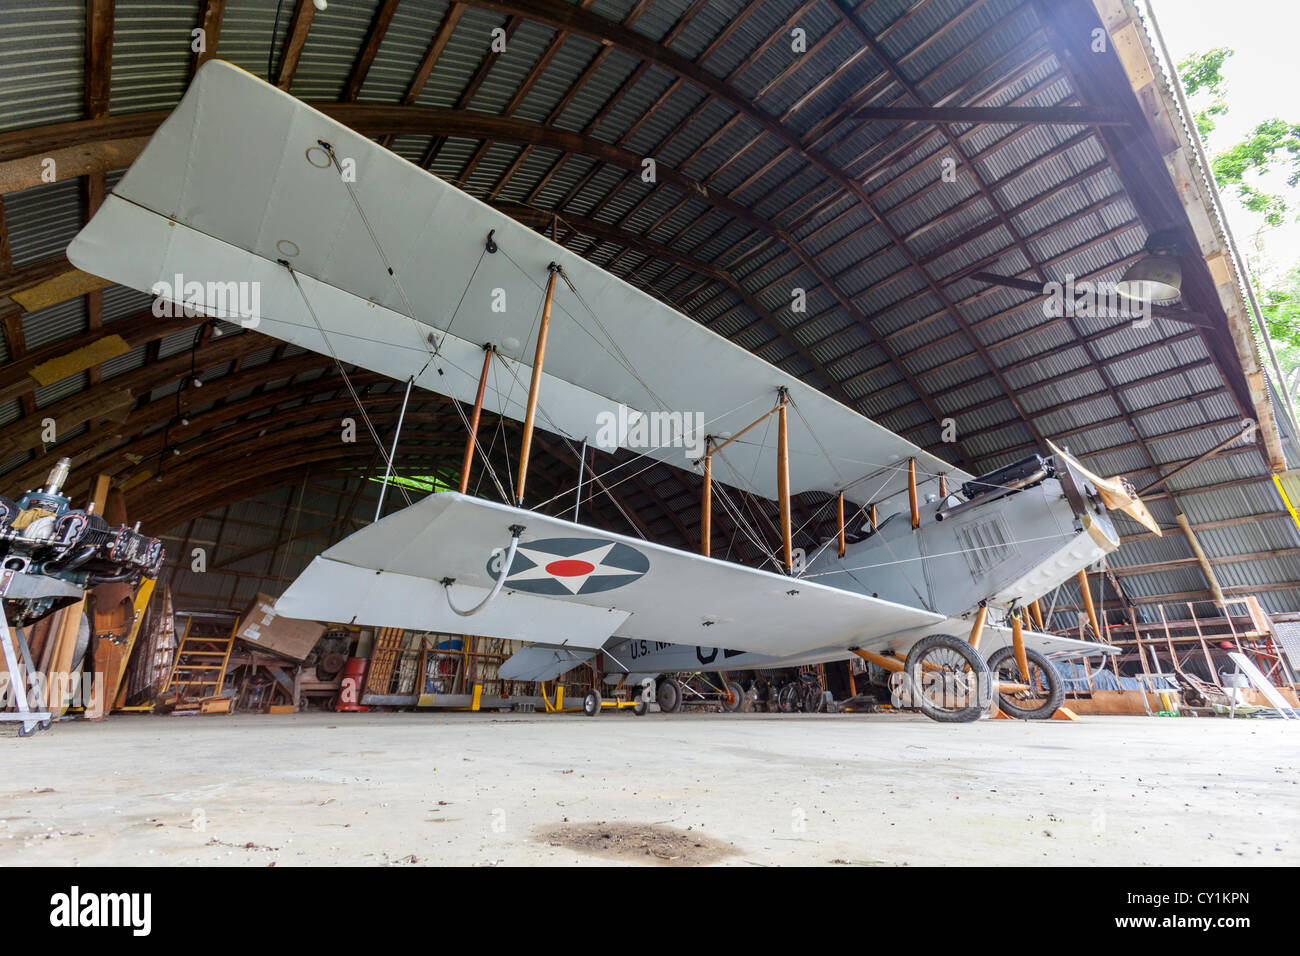 U.S. Navy antique biplane. - Stock Image